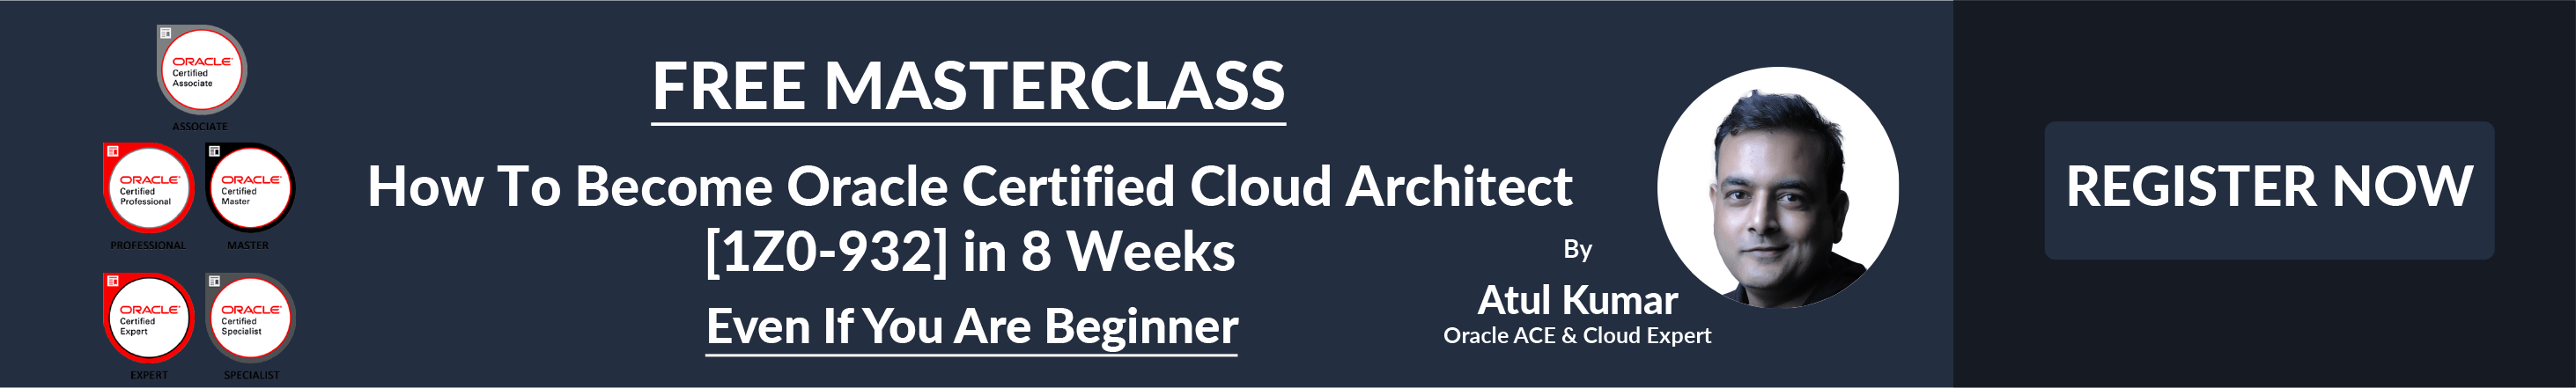 Register this FREE Masterclass to Become Oracle Cloud Certified